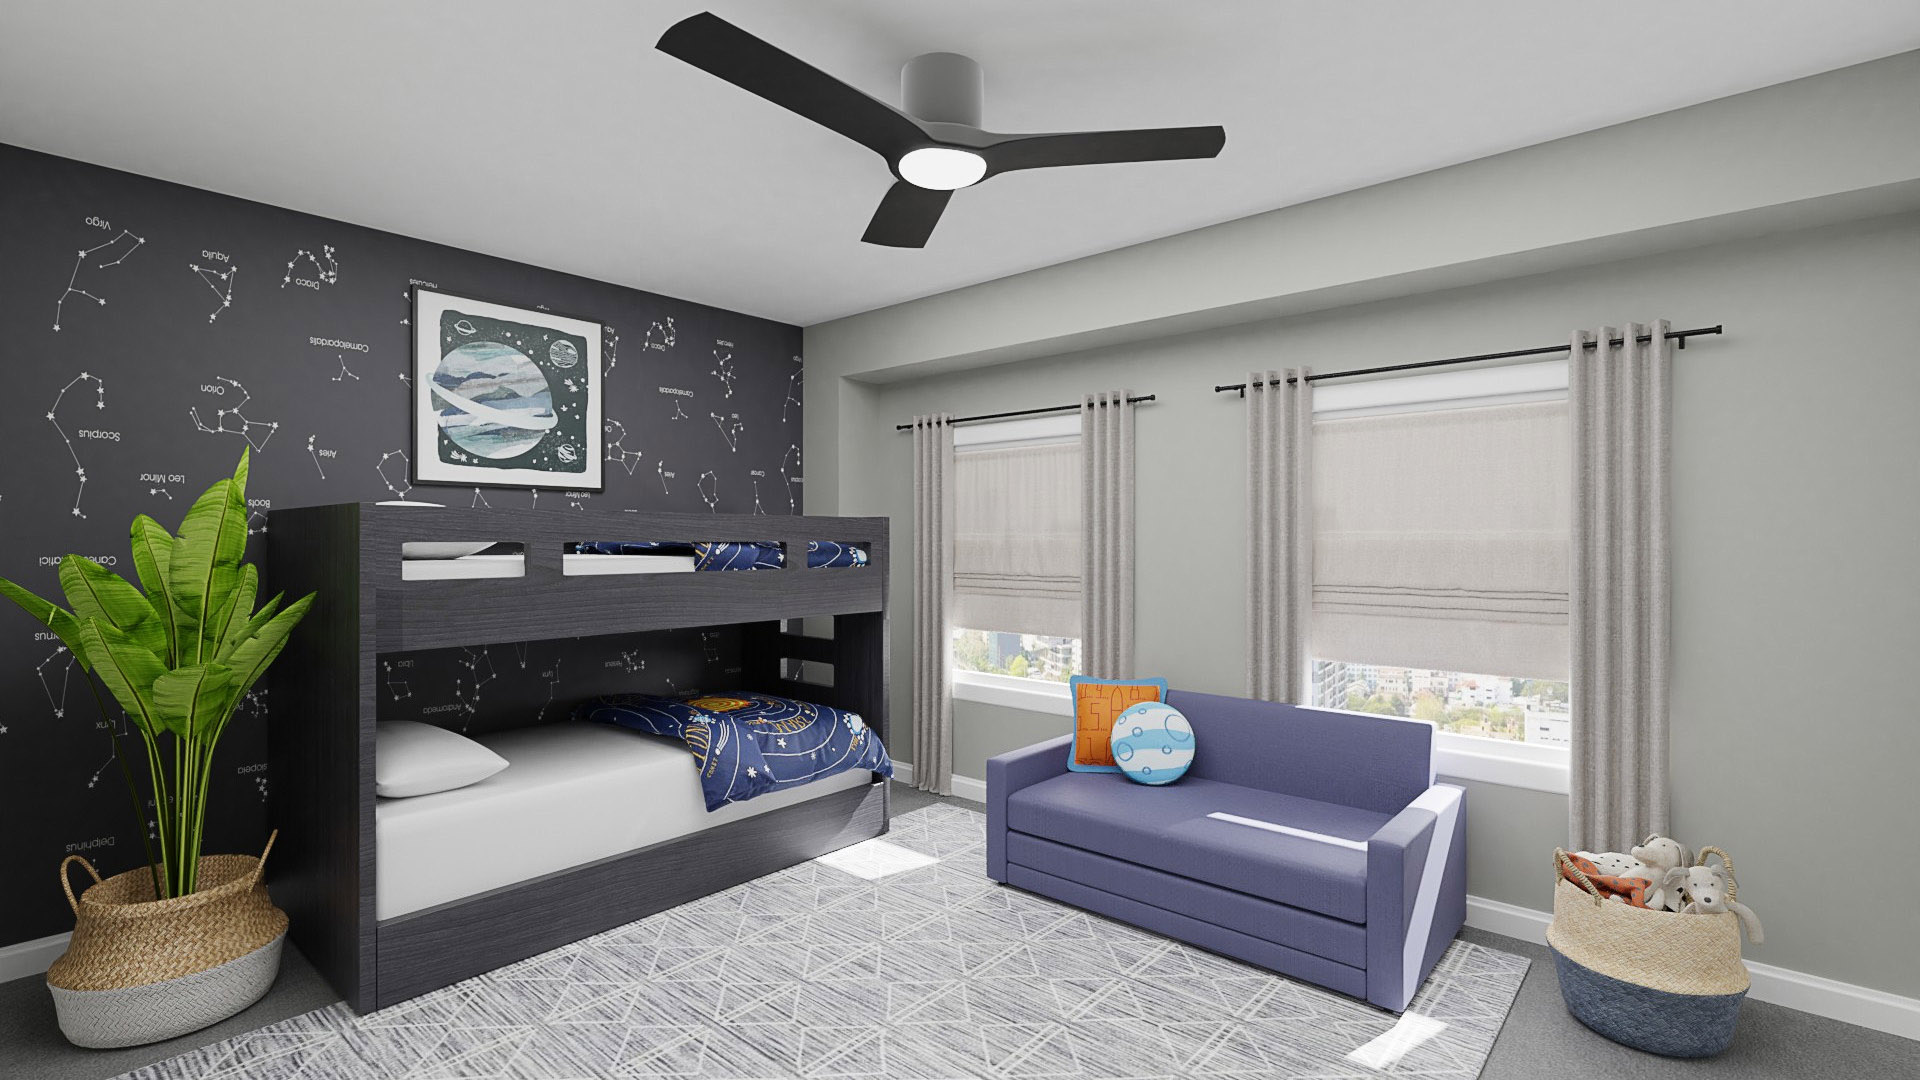 7 Kids Bedroom Theme Decor Ideas That Are Cool Attractive Spacejoy